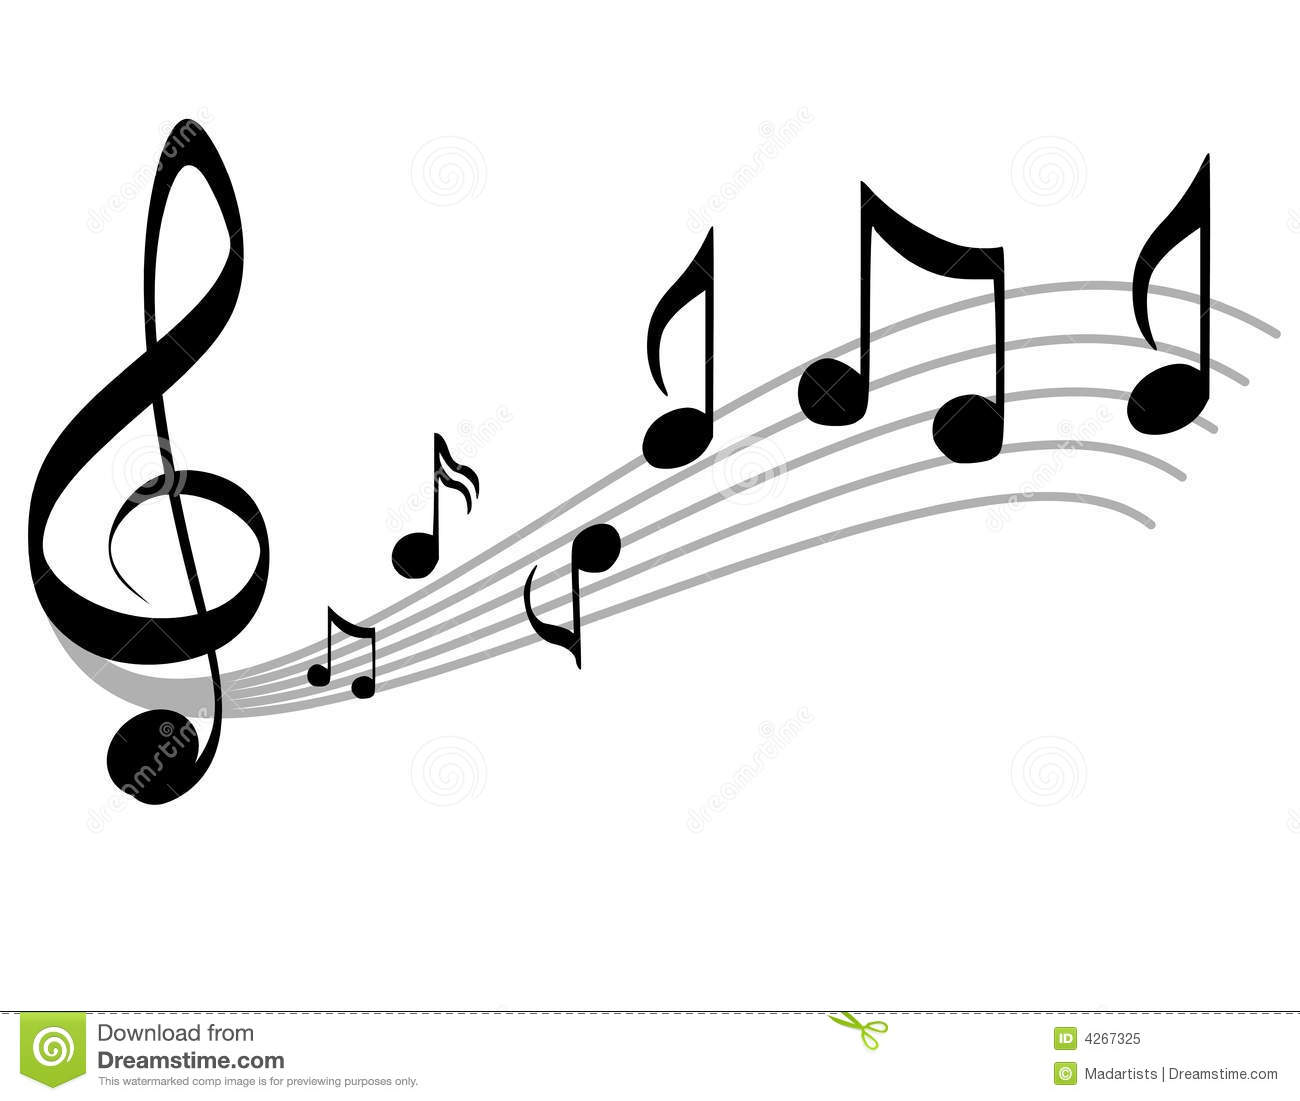 Free music note clipart free download best free music note 1300x1101 free music clipart to download biocorpaavc